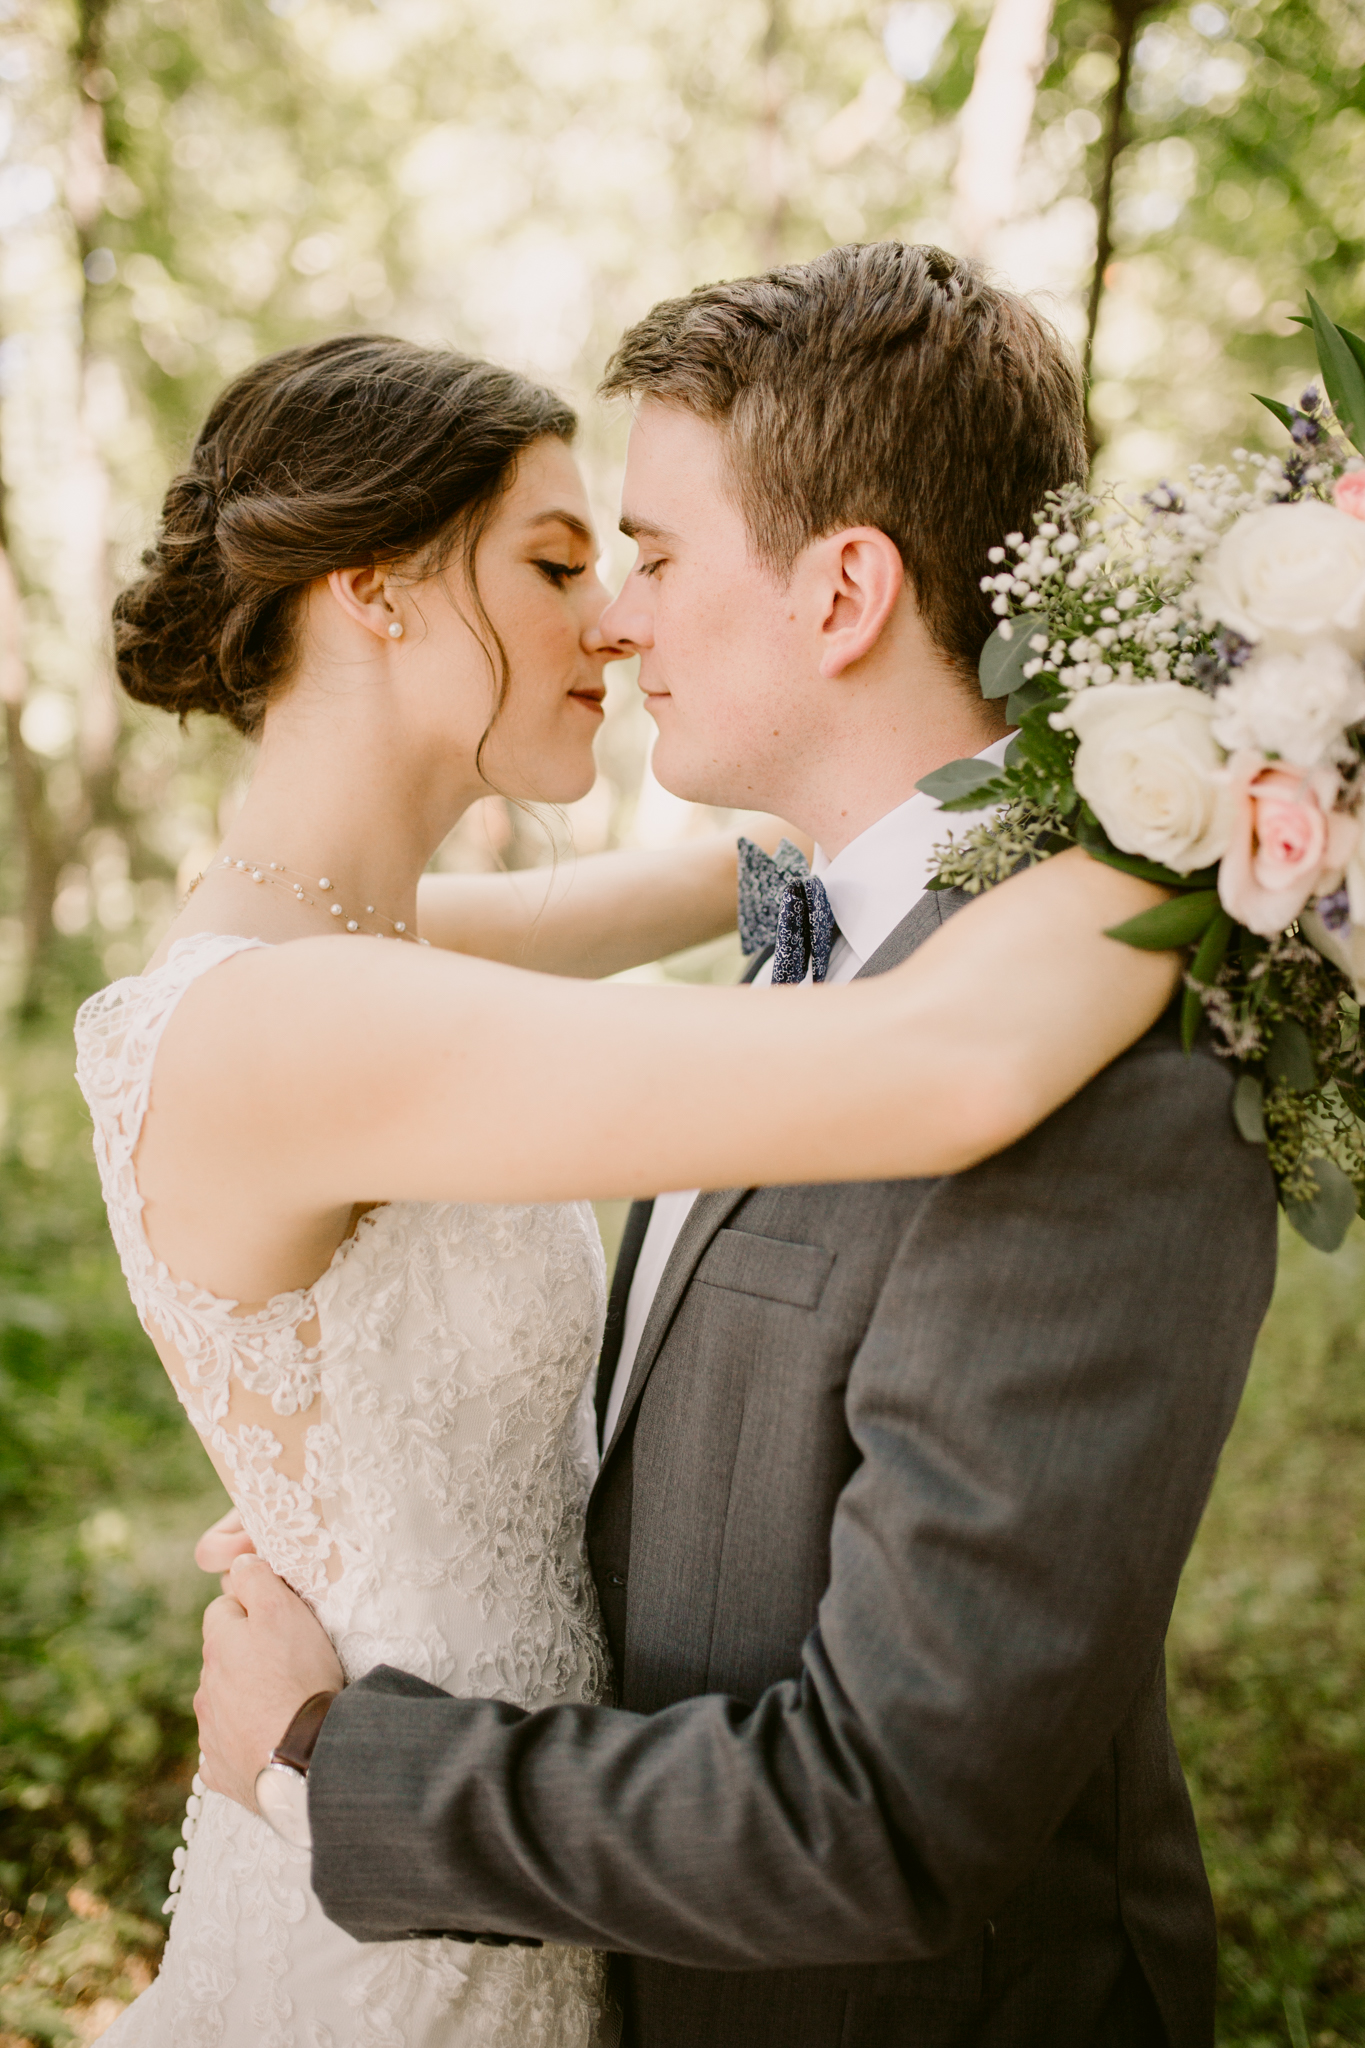 Joel molly roloff farm wedding julia green joel molly tied the knot on august 5th 2017 at mollys childhood farm their ceremony took place in the forest a place that joel and molly loved to junglespirit Choice Image